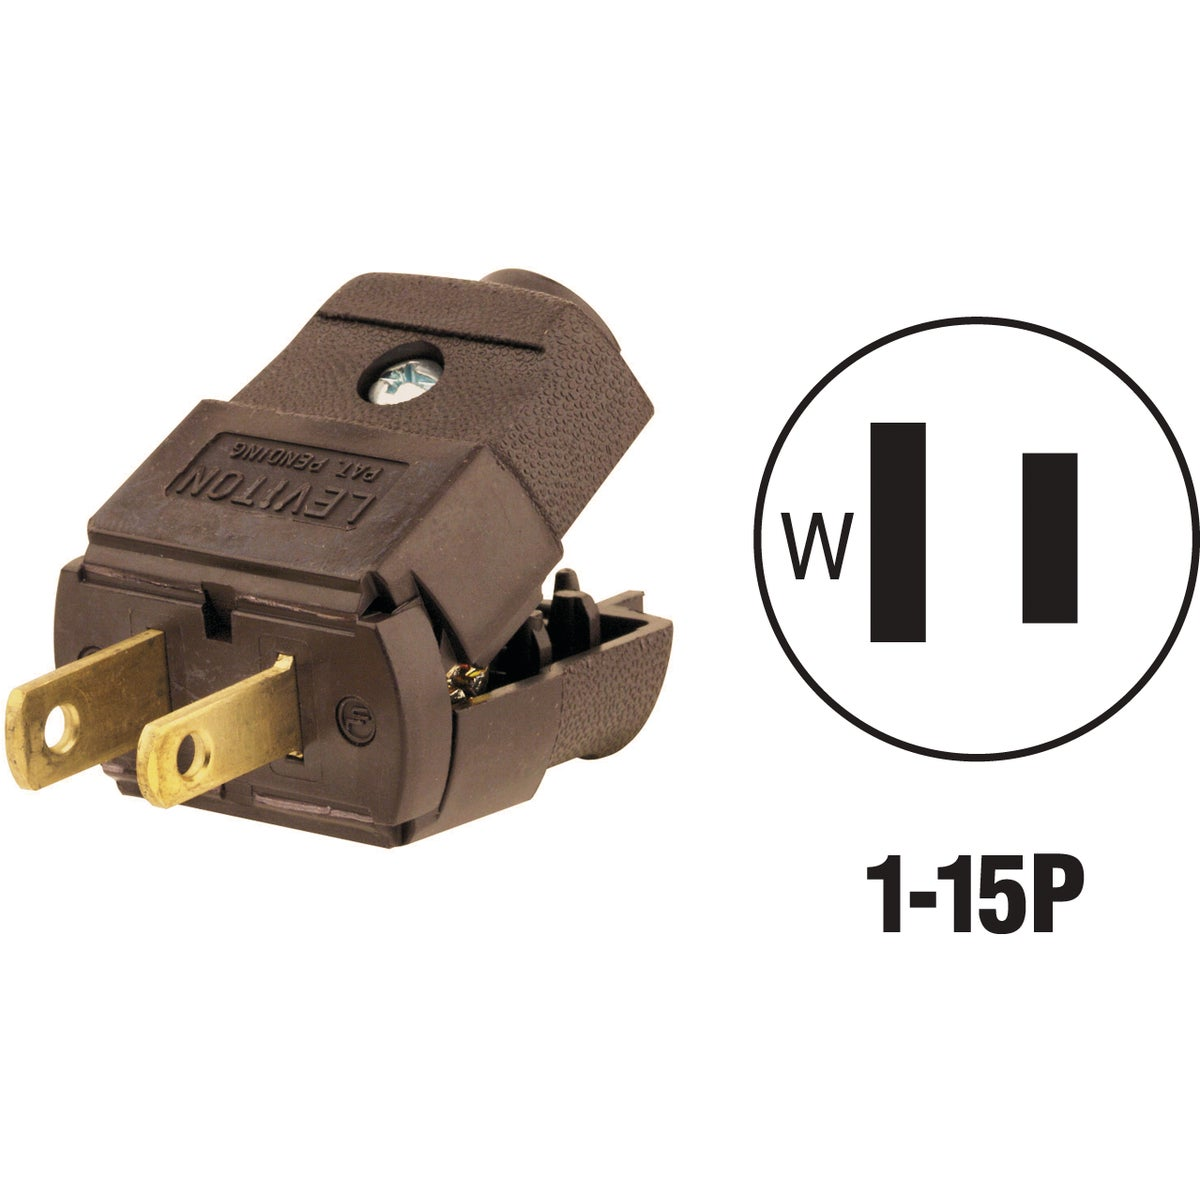 BRN CORD PLUG - 015-101P by Leviton Mfg Co